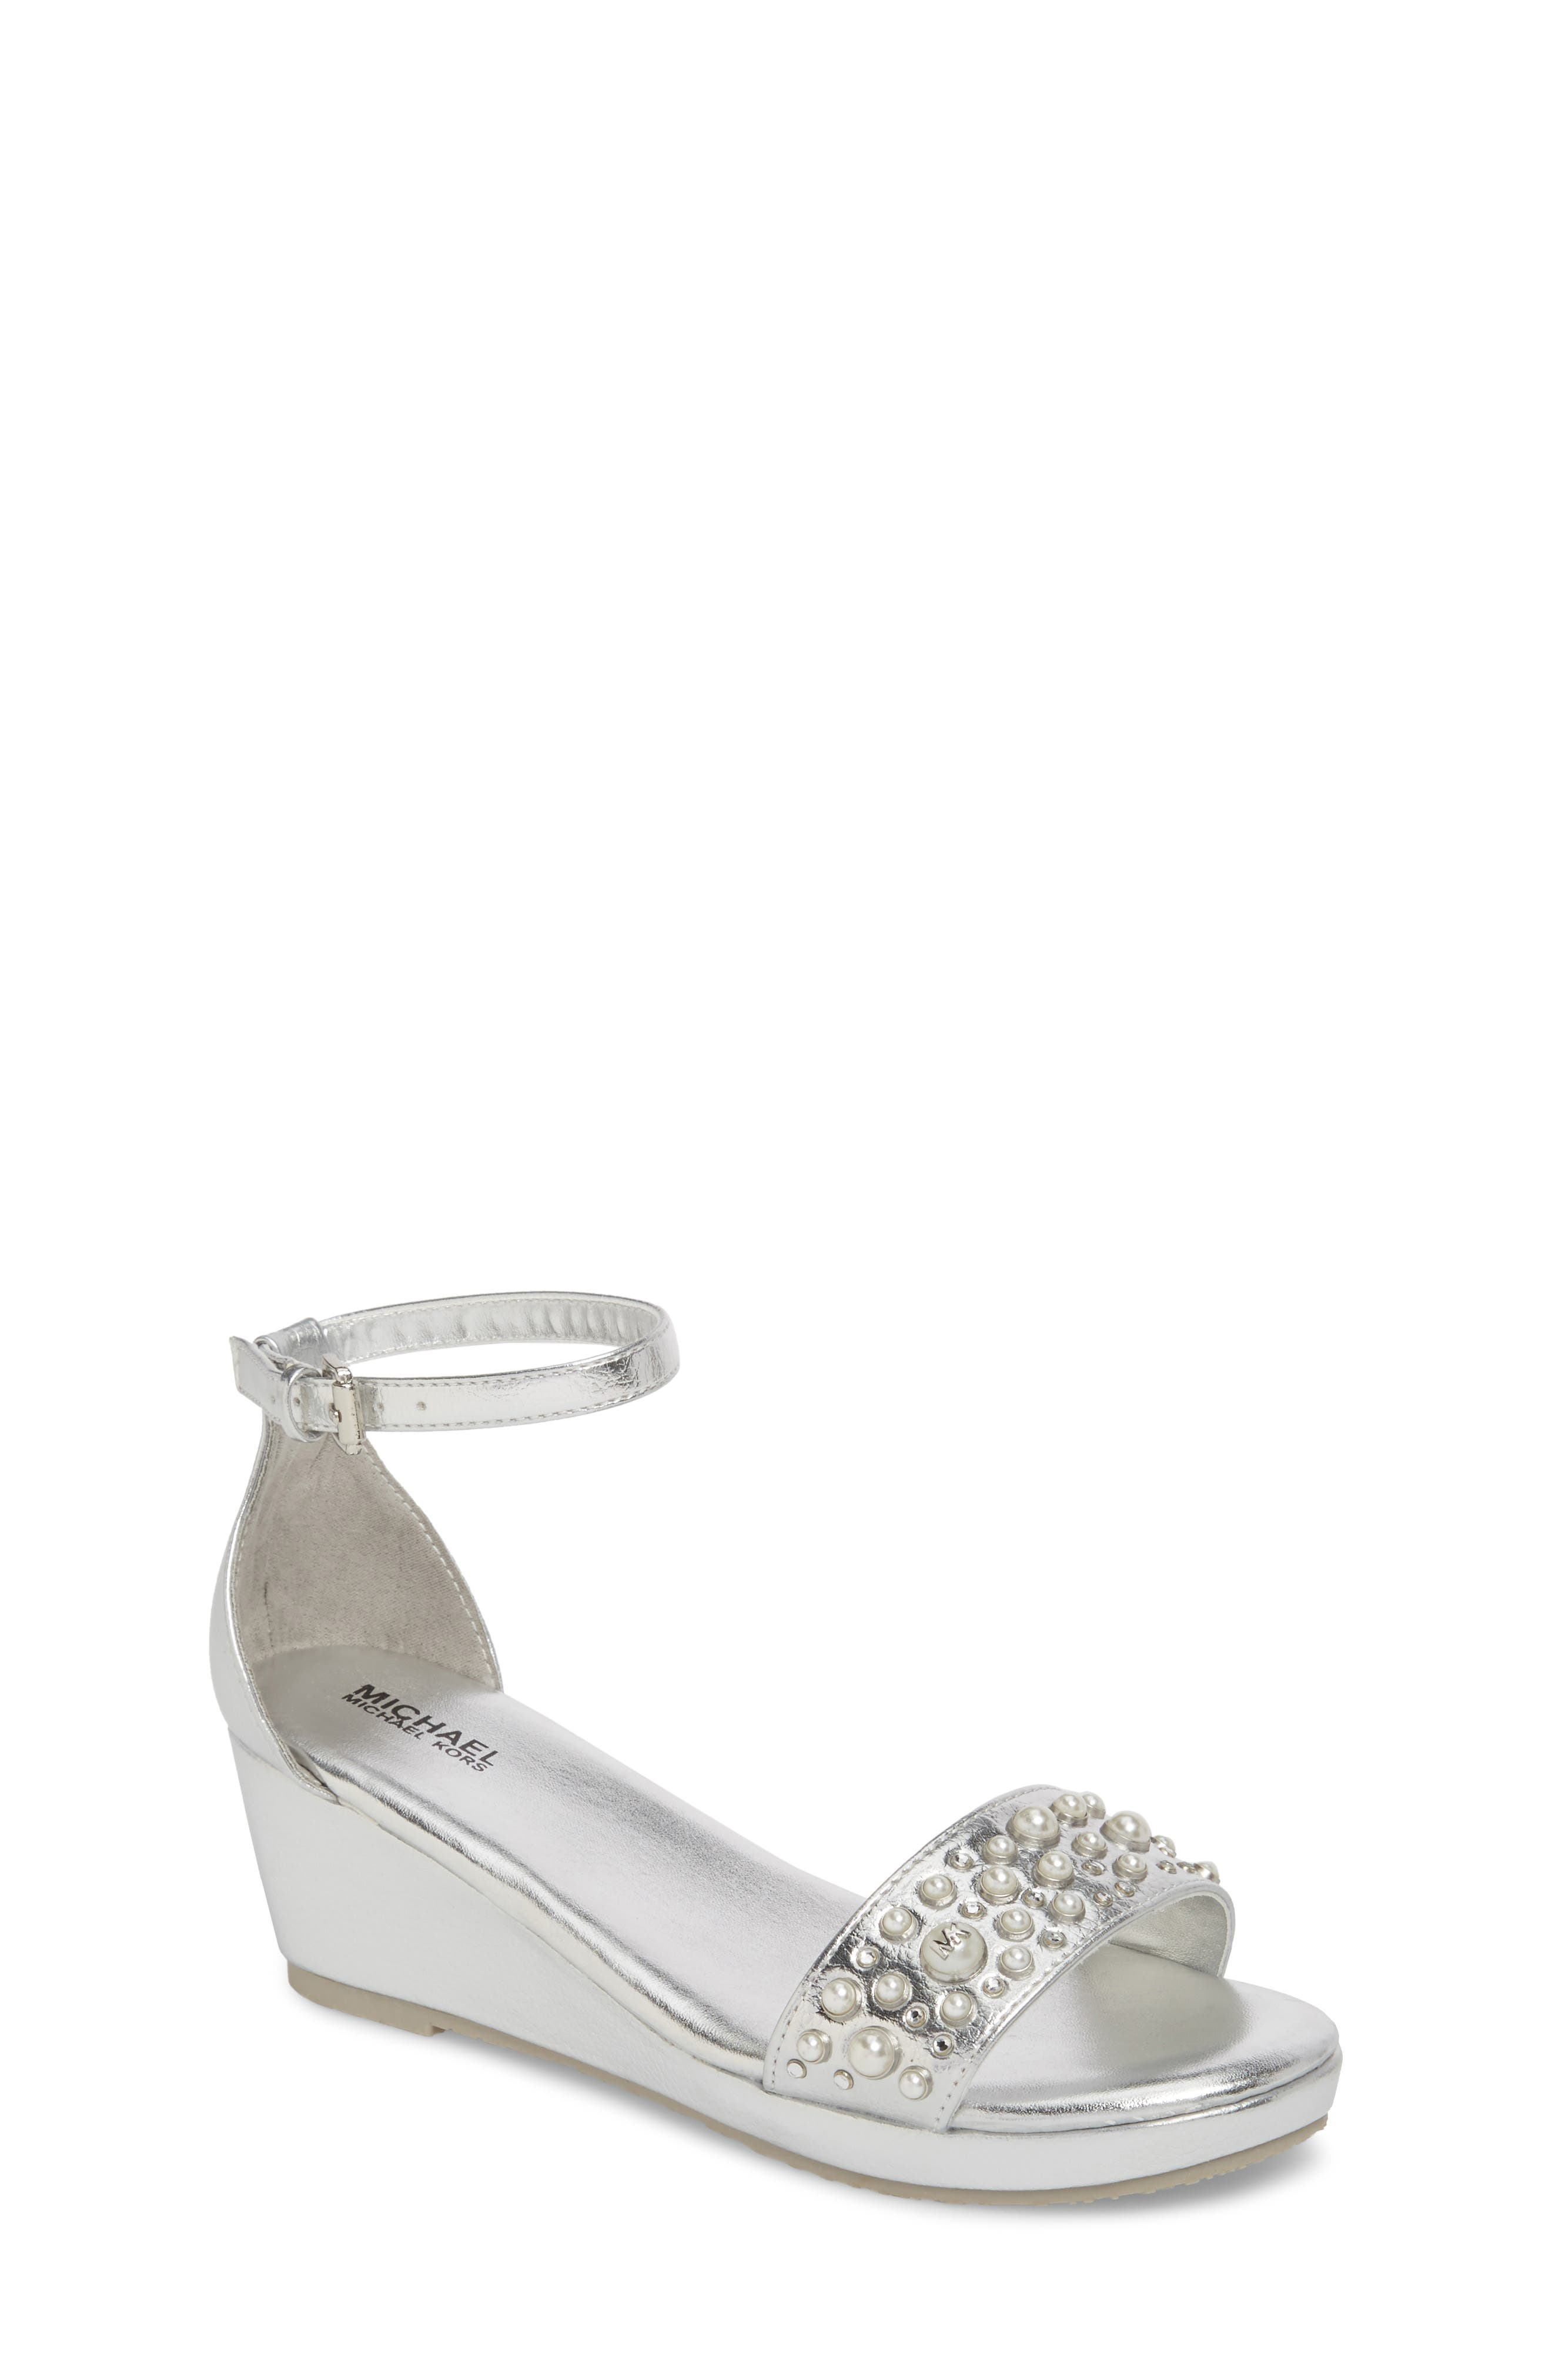 Cate Embellished Wedge Sandal,                             Main thumbnail 1, color,                             040